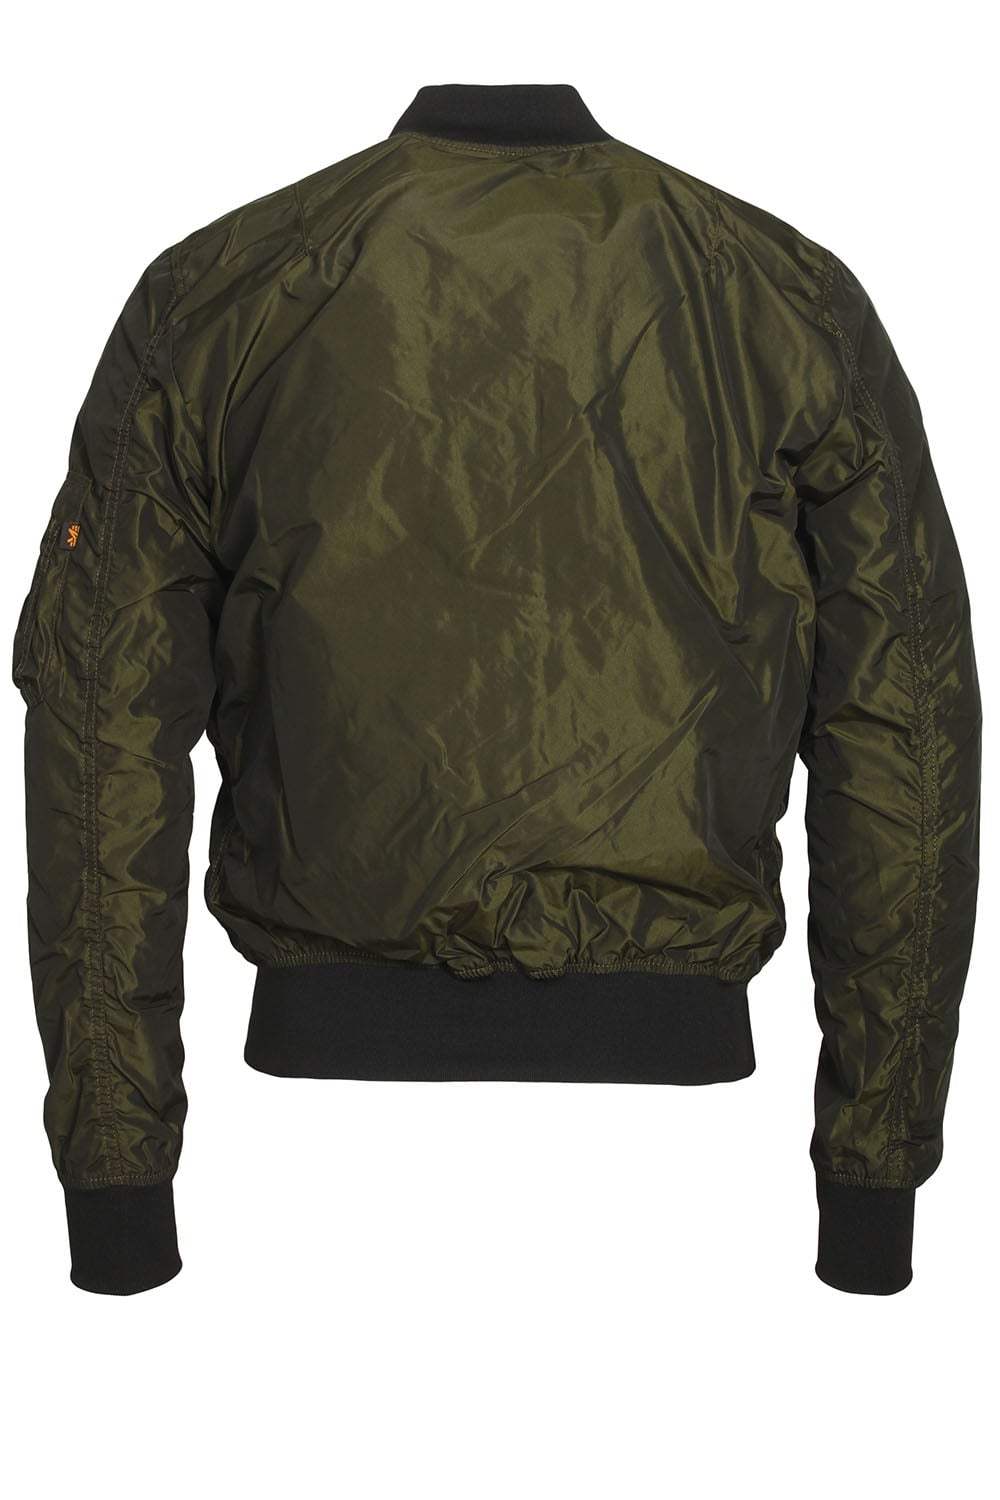 alpha industries ma 1 tt irridian green bomber jacket. Black Bedroom Furniture Sets. Home Design Ideas